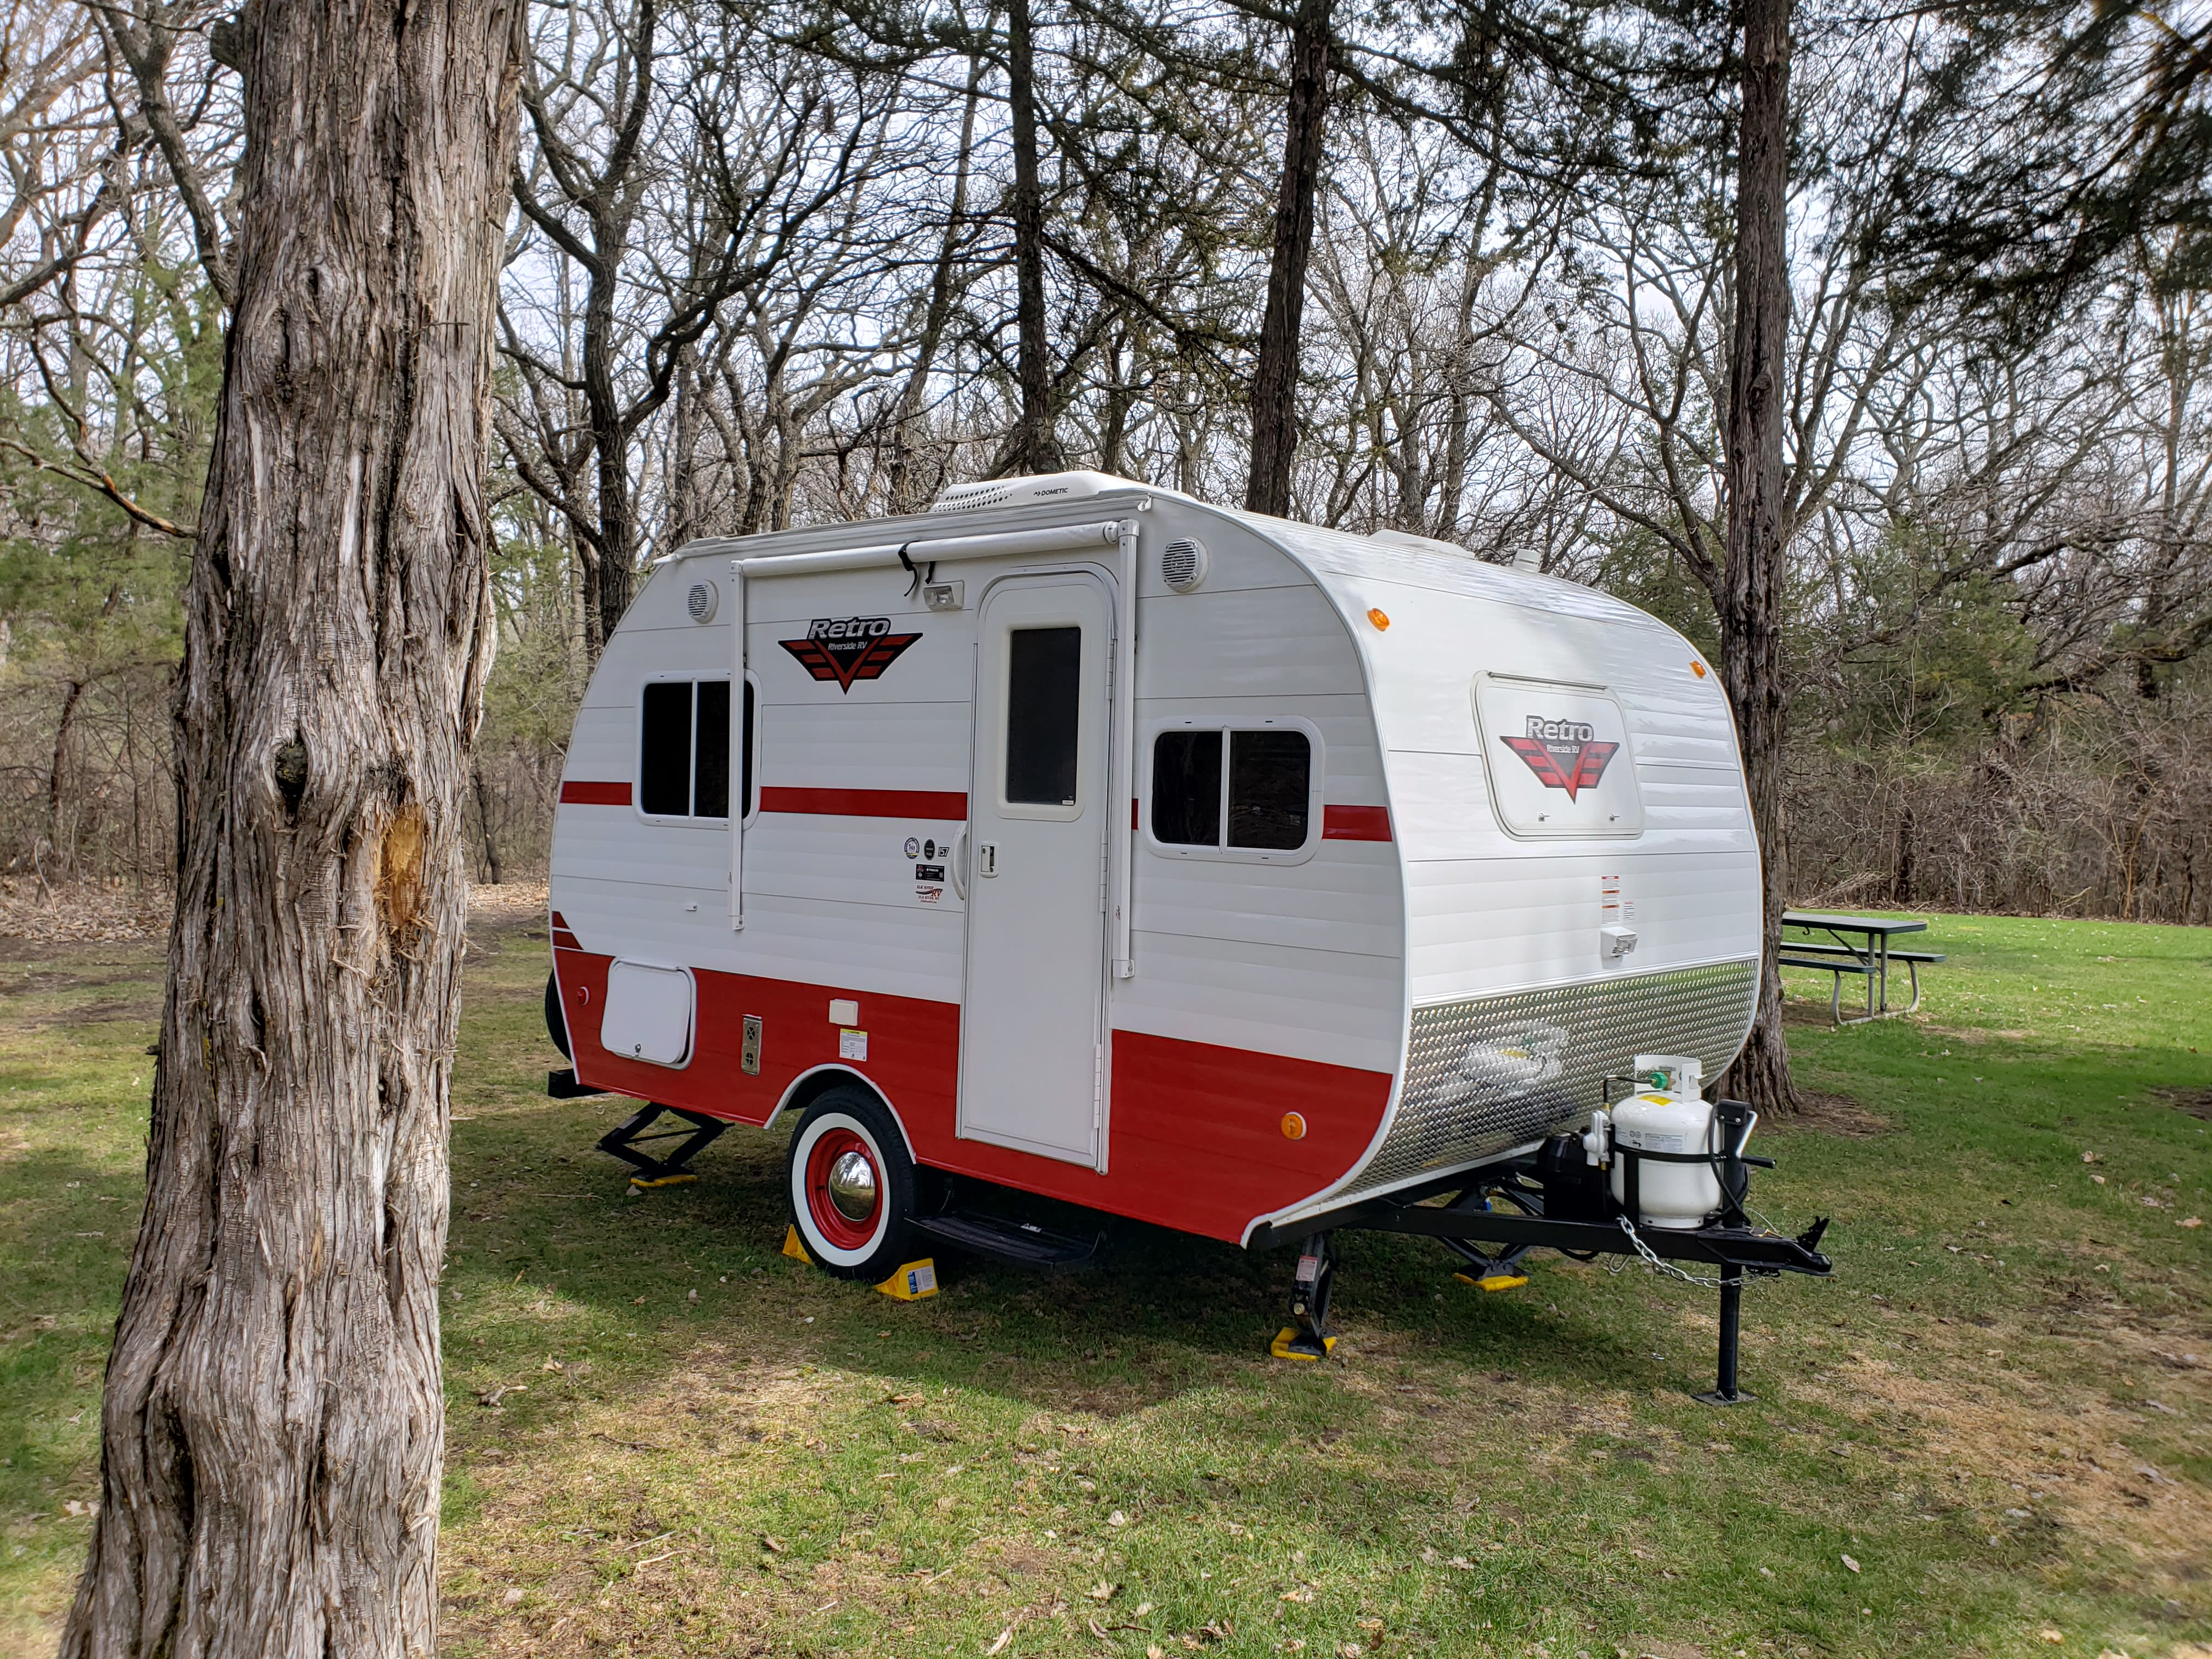 Set up and ready to camp. Riverside Rv Retro 157 2018